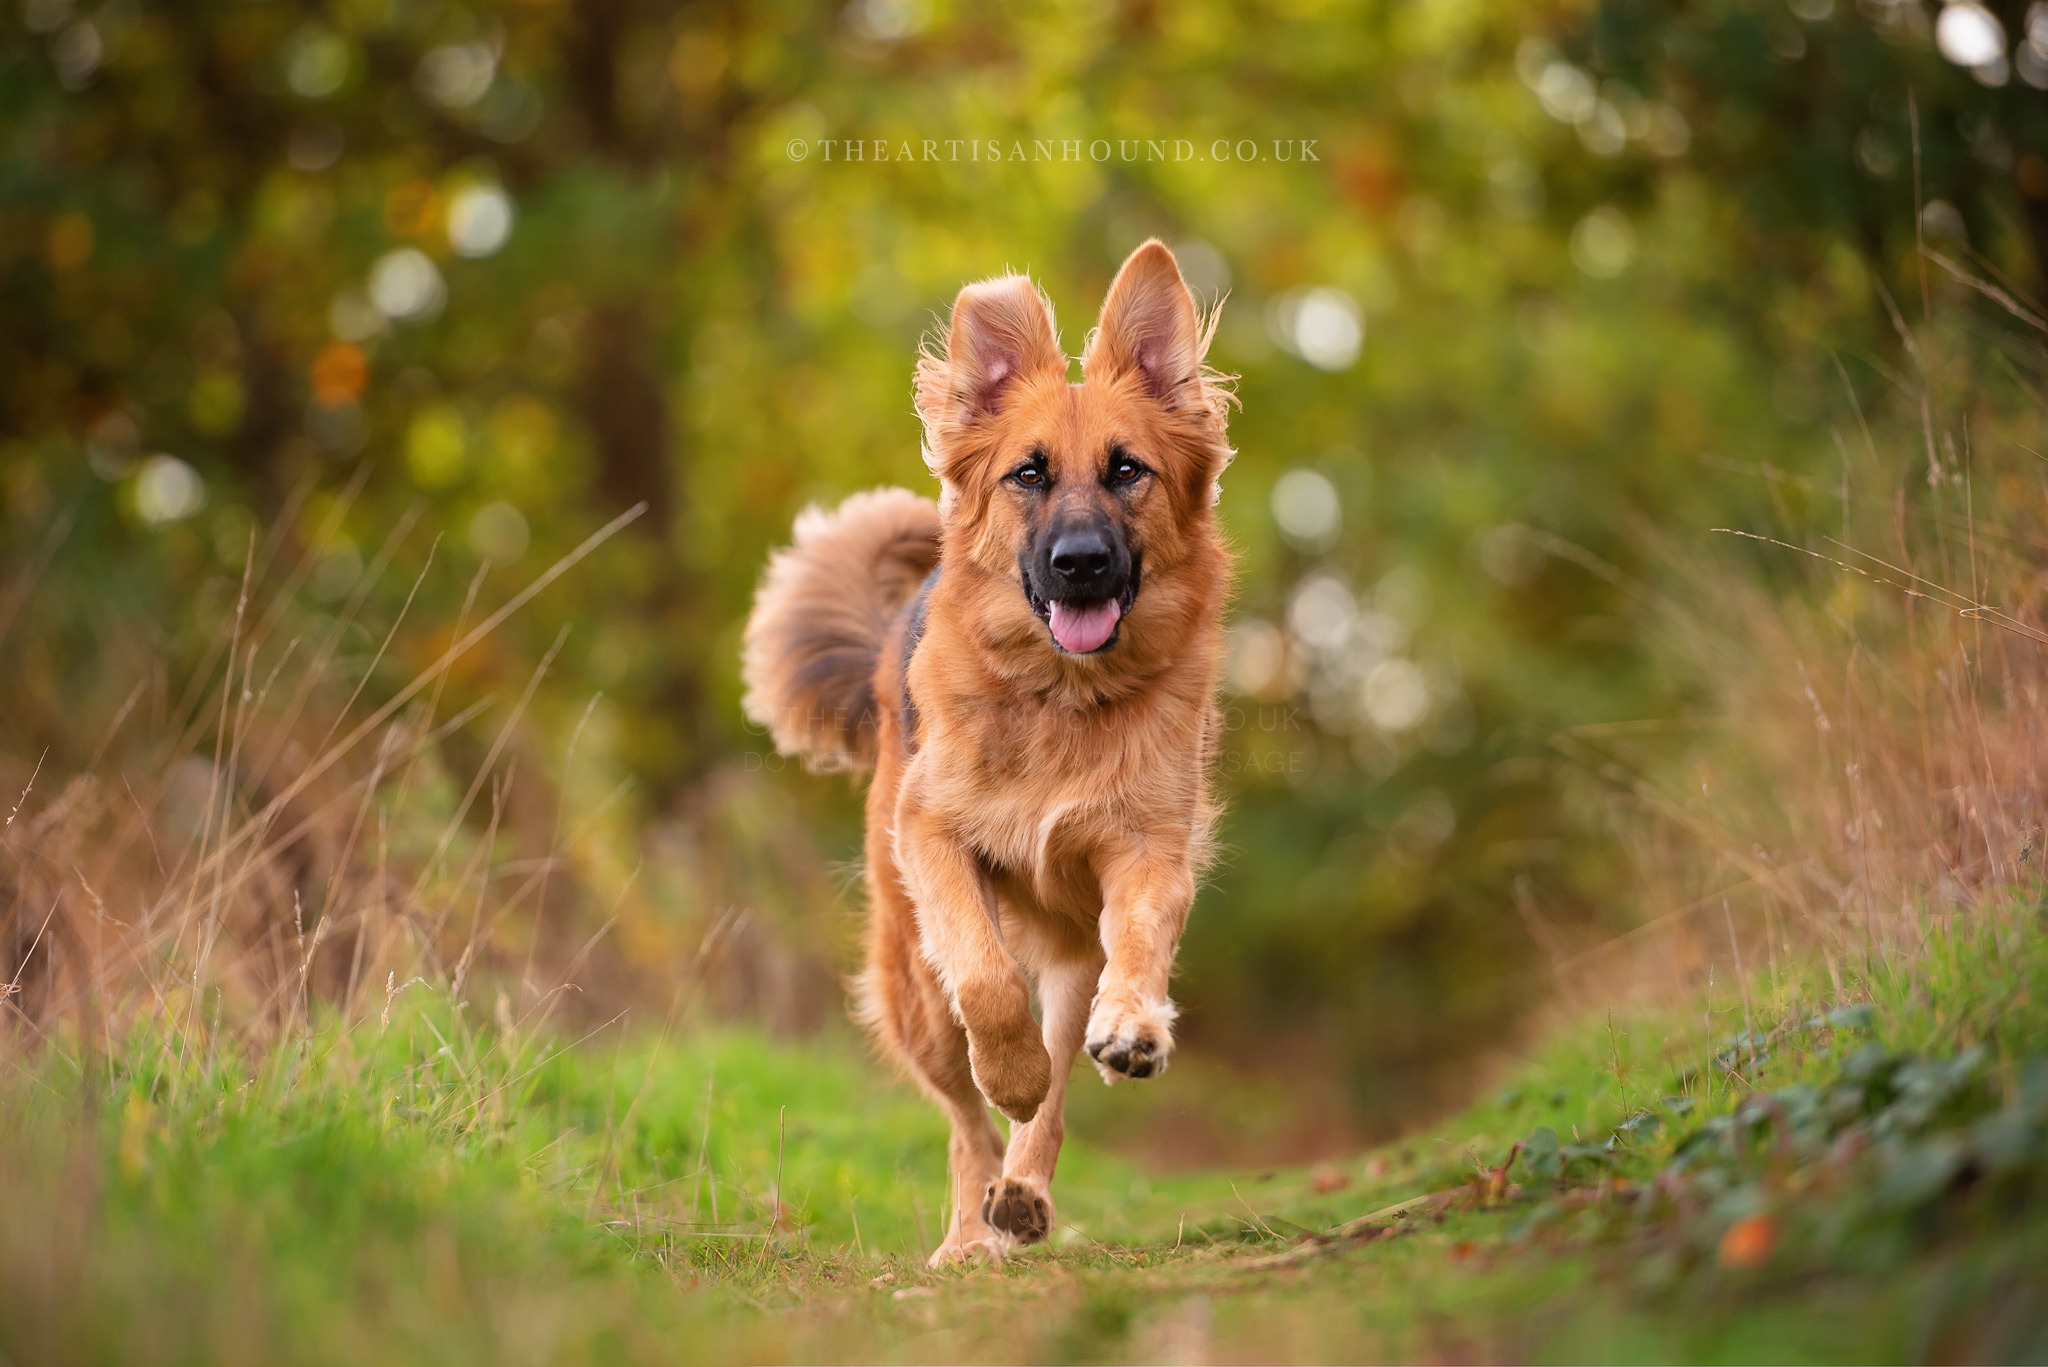 German Shepherd dog running towards photographer across park